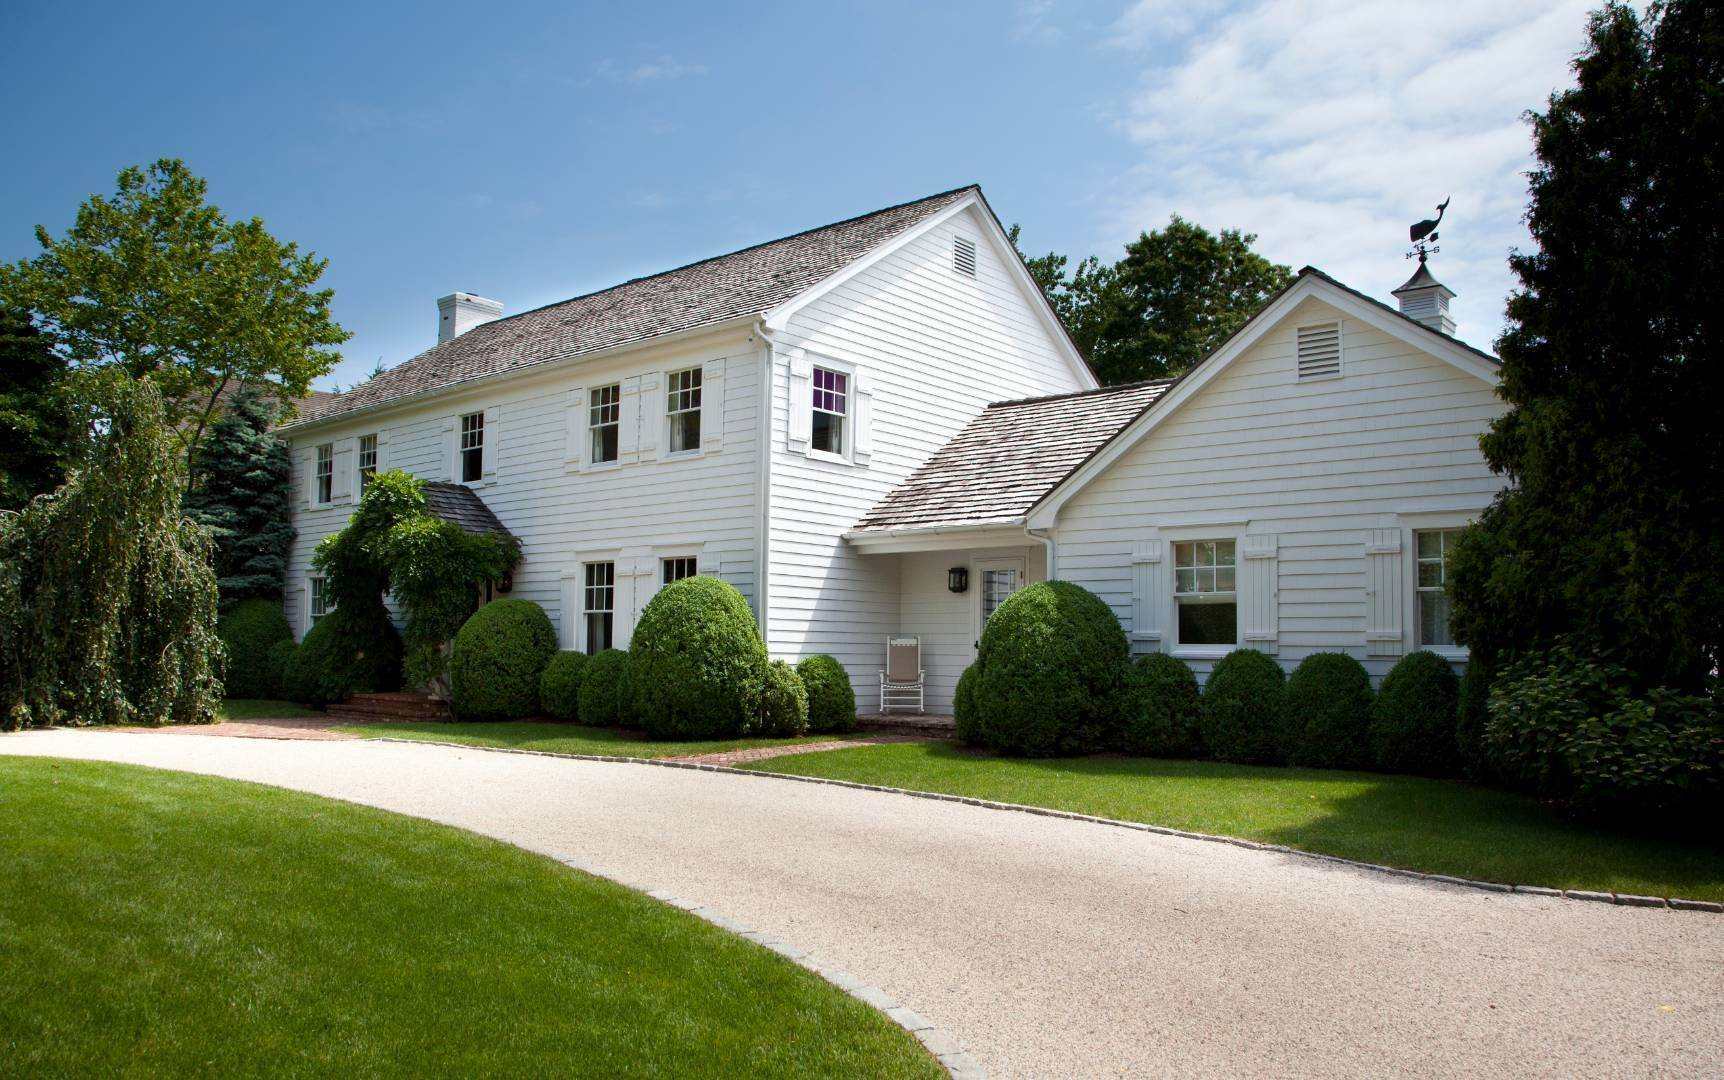 Single Family Home for Sale at Southampton Village Home, Honed From Experience 121 Harvest Lane, Southampton, NY 11968